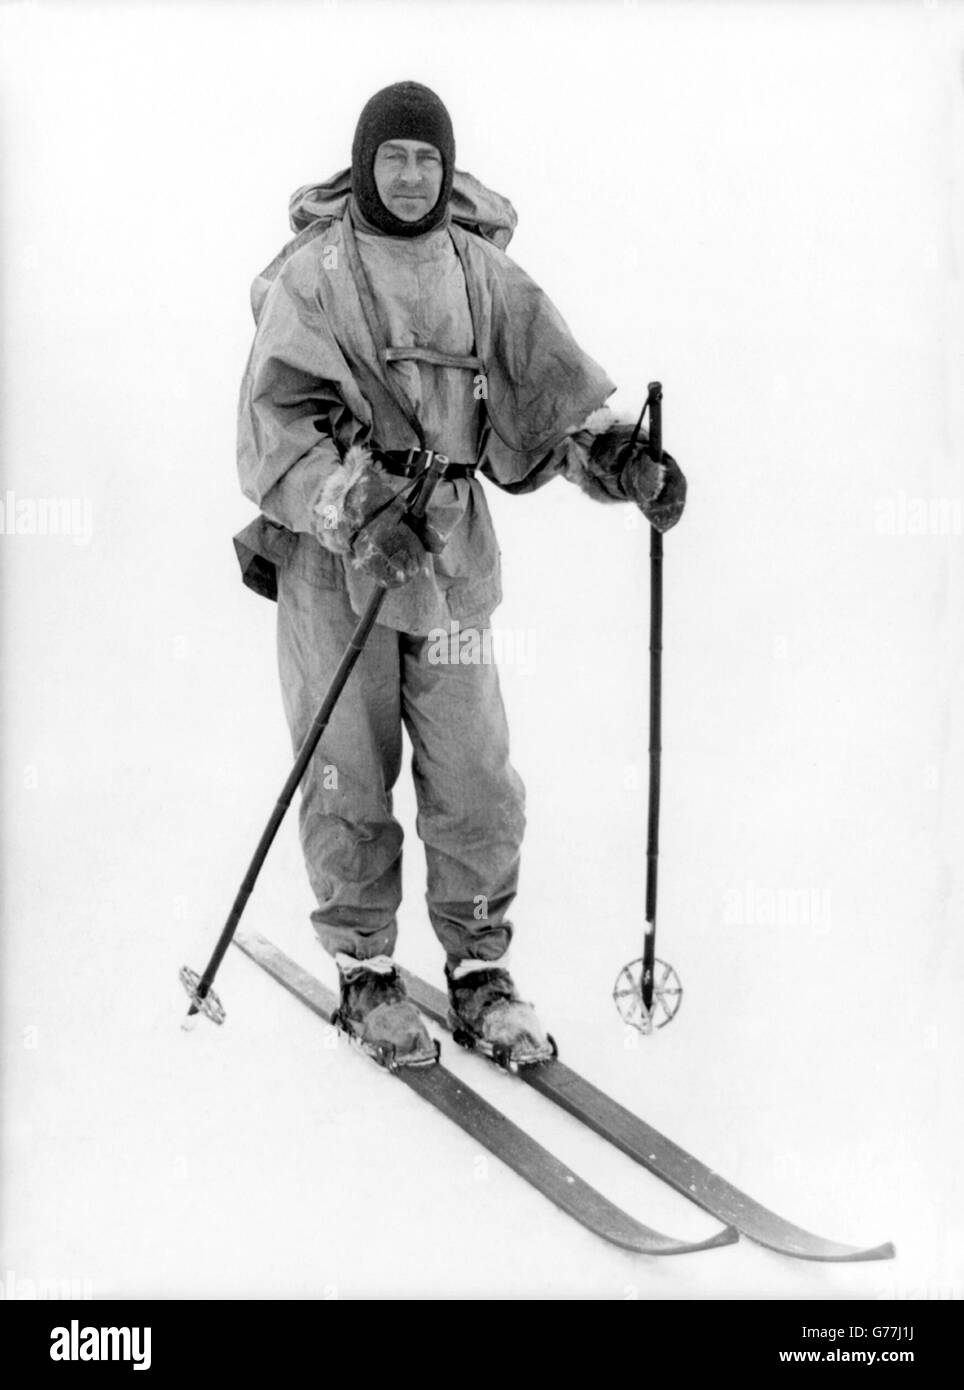 Captain Robert Falcon Scott on skis during the Terra Nova Expedition (British Antarctic Expedition) of 1910-1913. - Stock Image